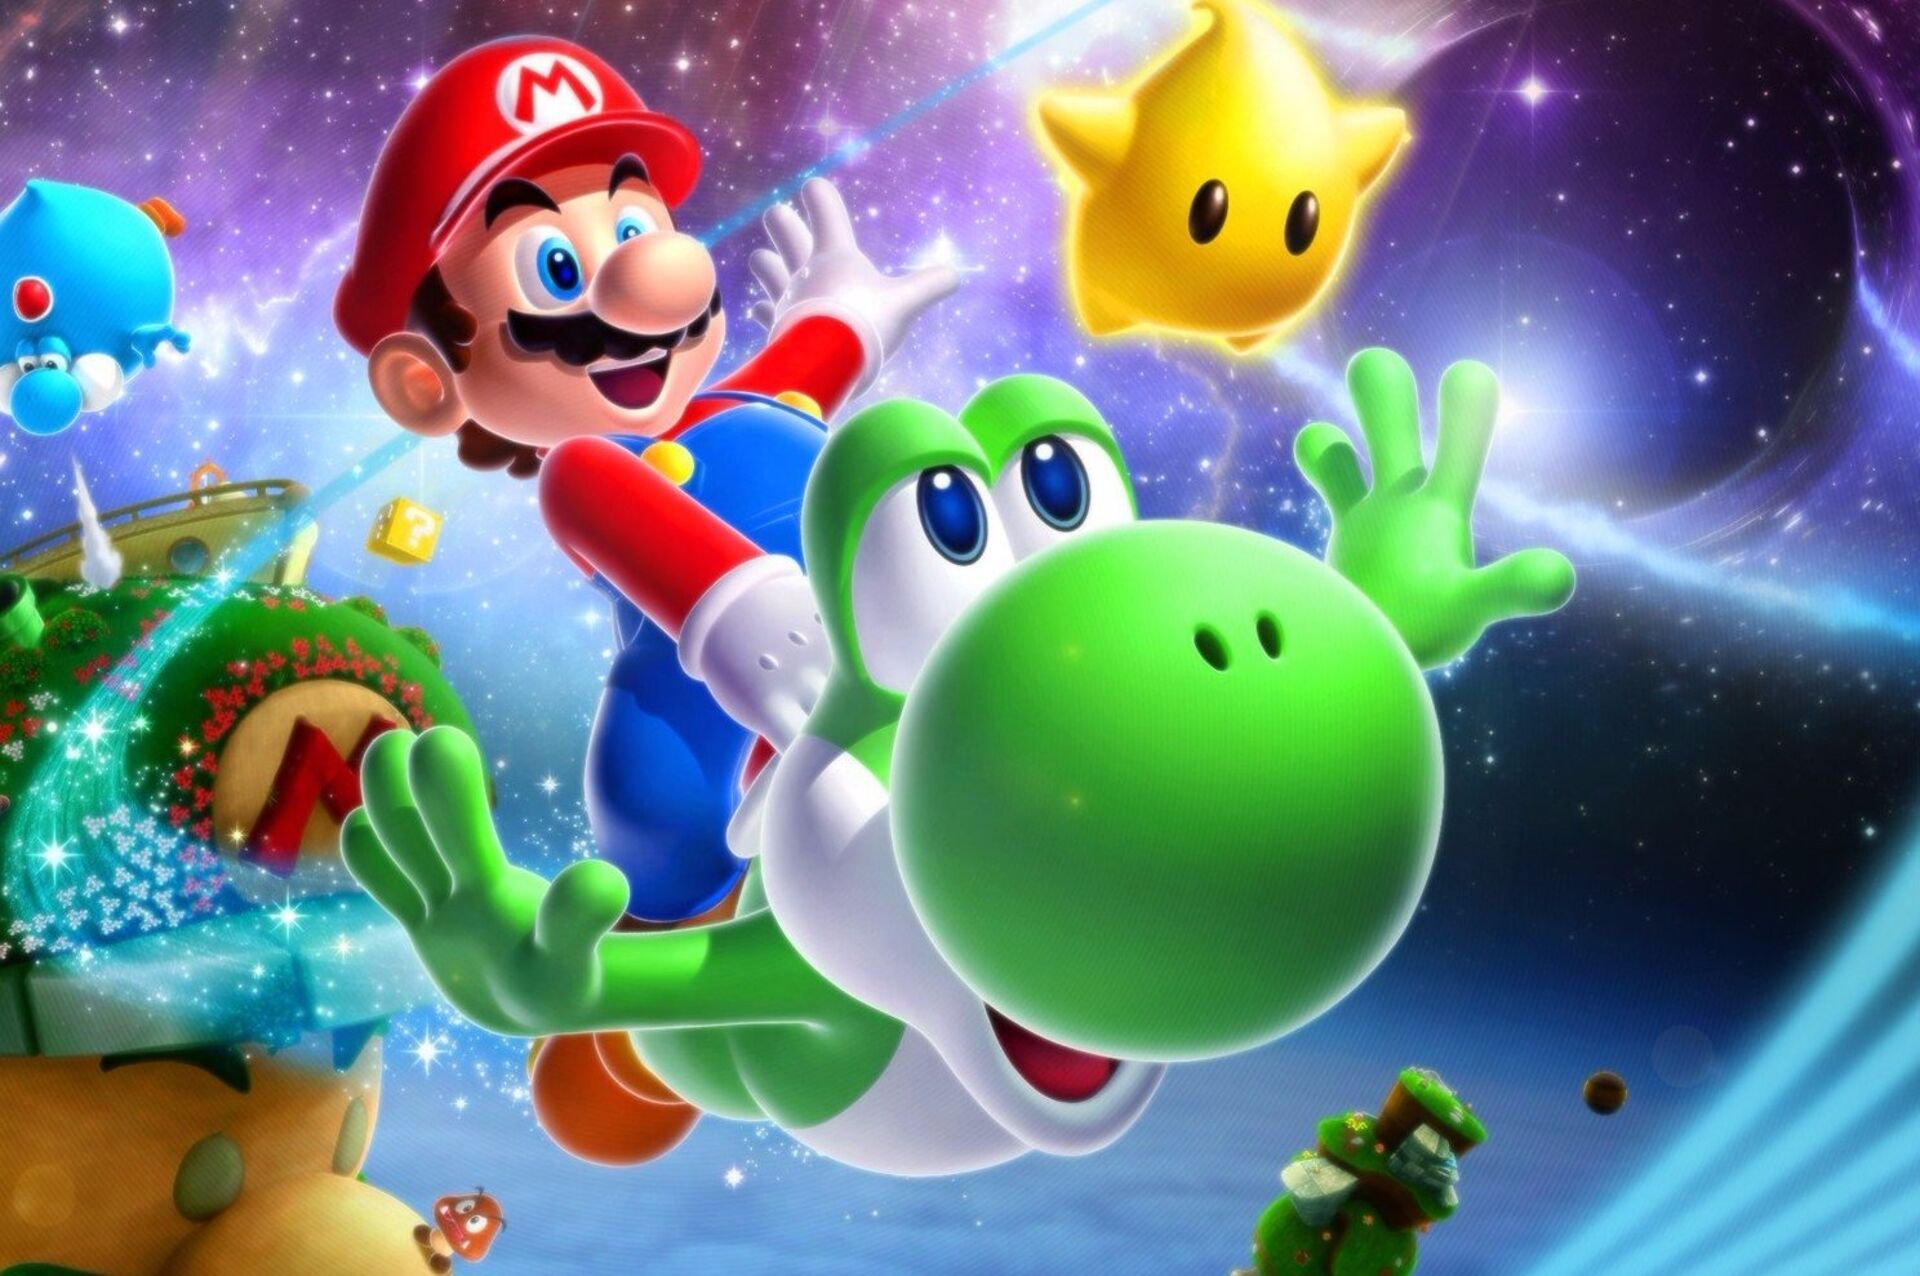 In Theory: Could NX bring Wii and GameCube games to Virtual Console